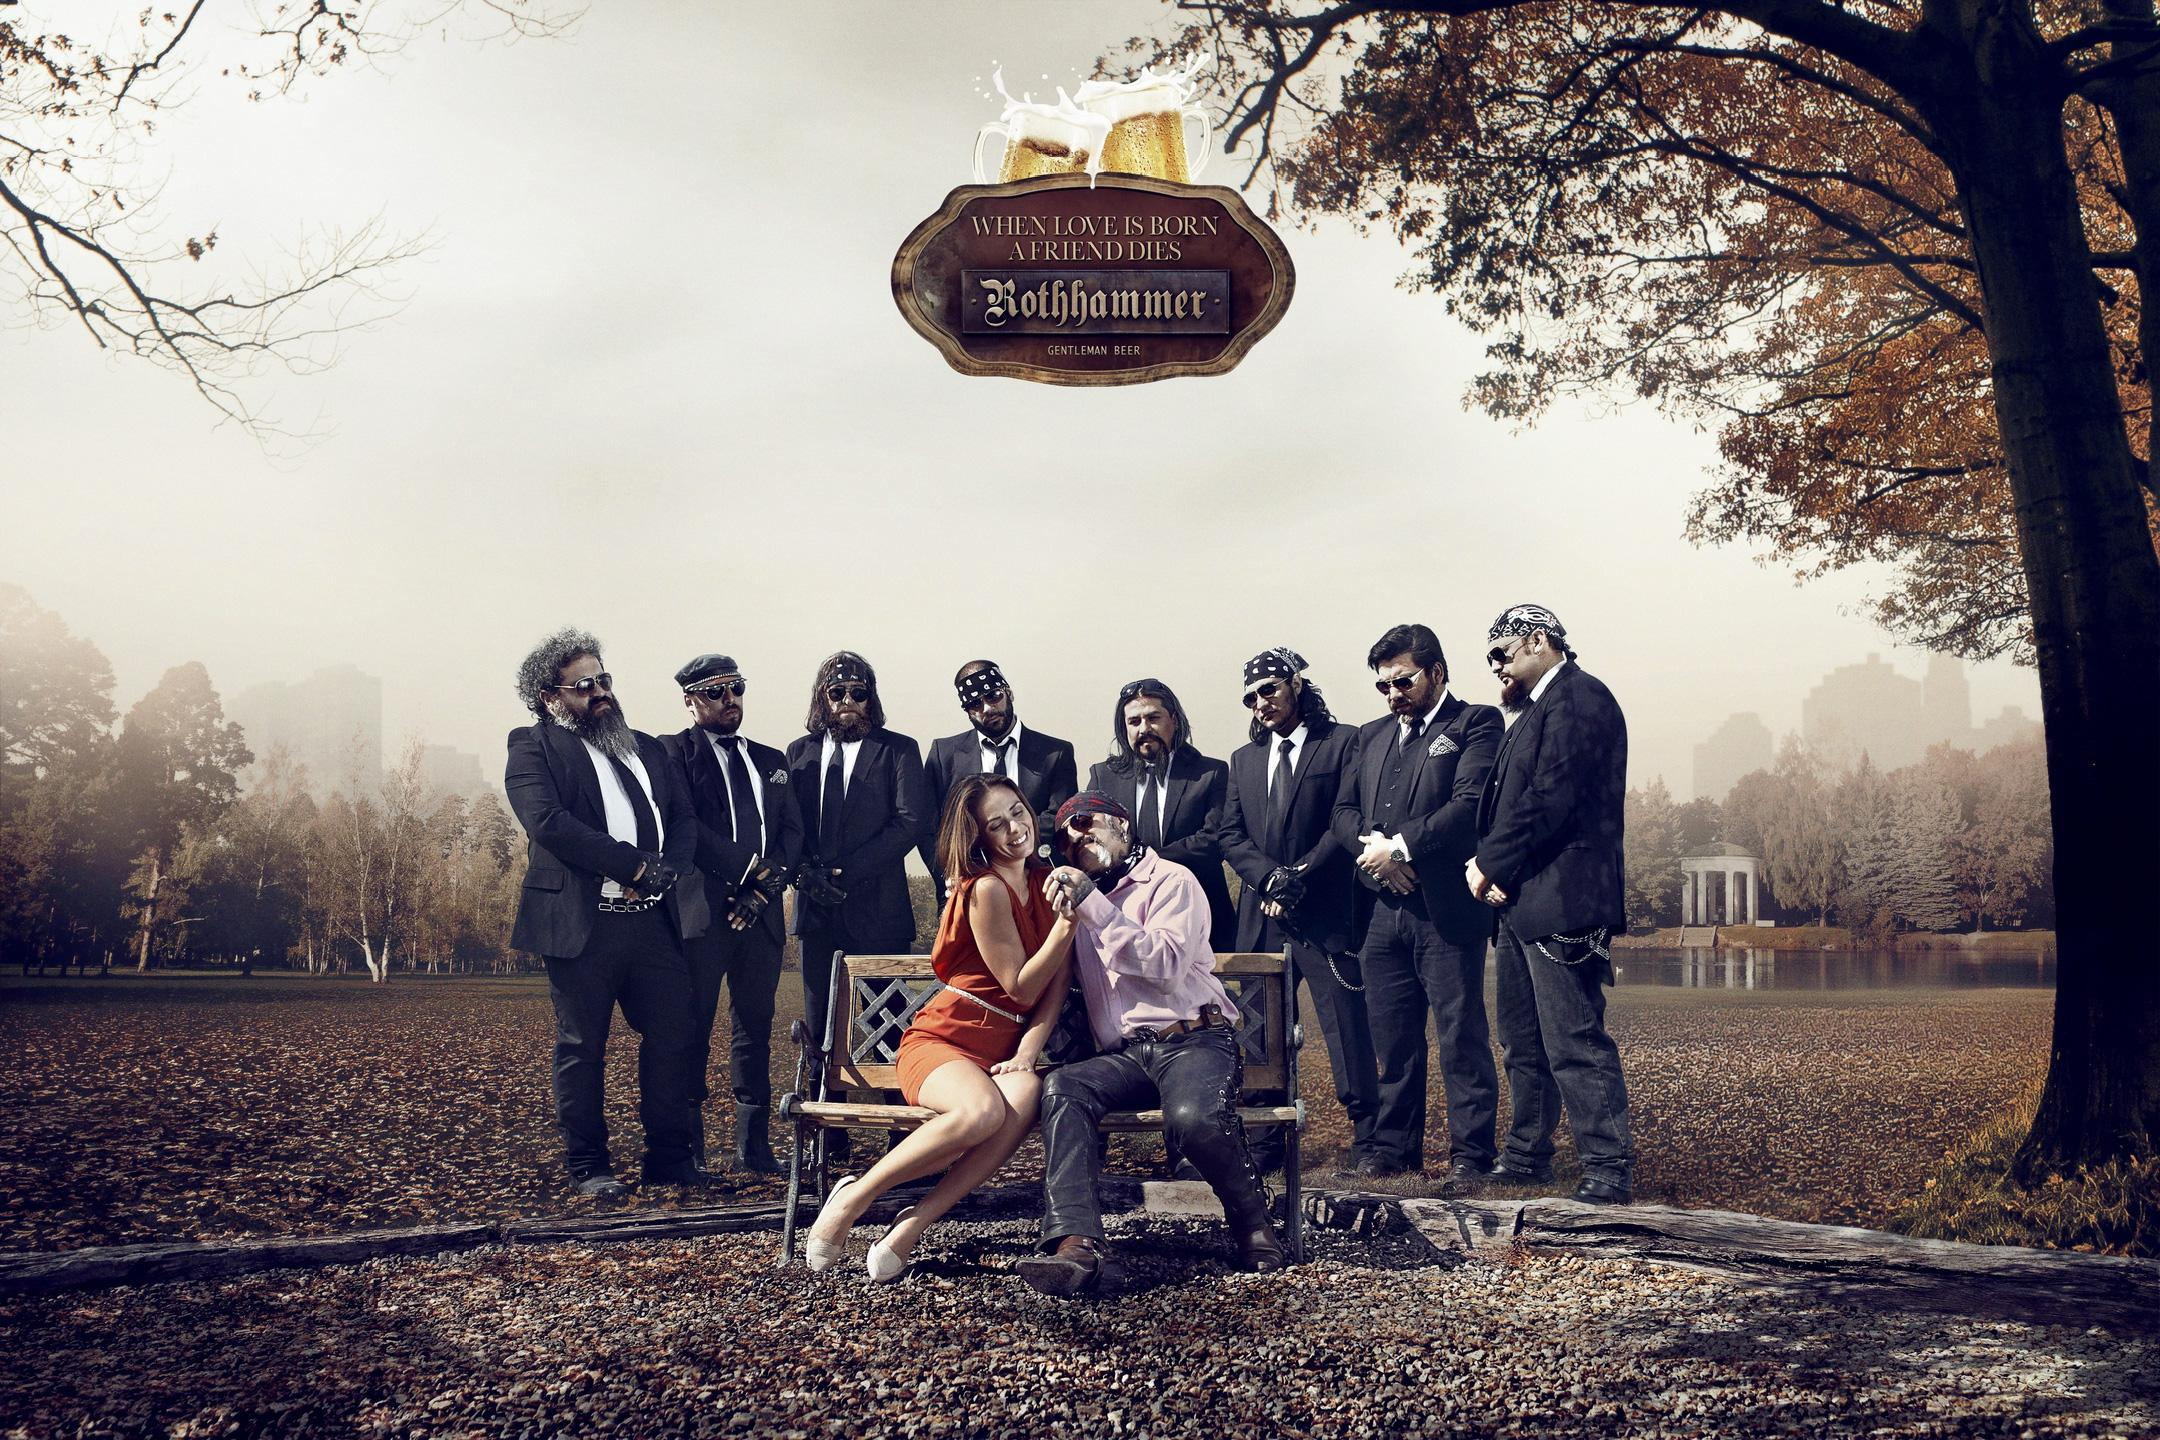 Cliente: Rothhammer Beer. Agenzia: Prolam Y&R